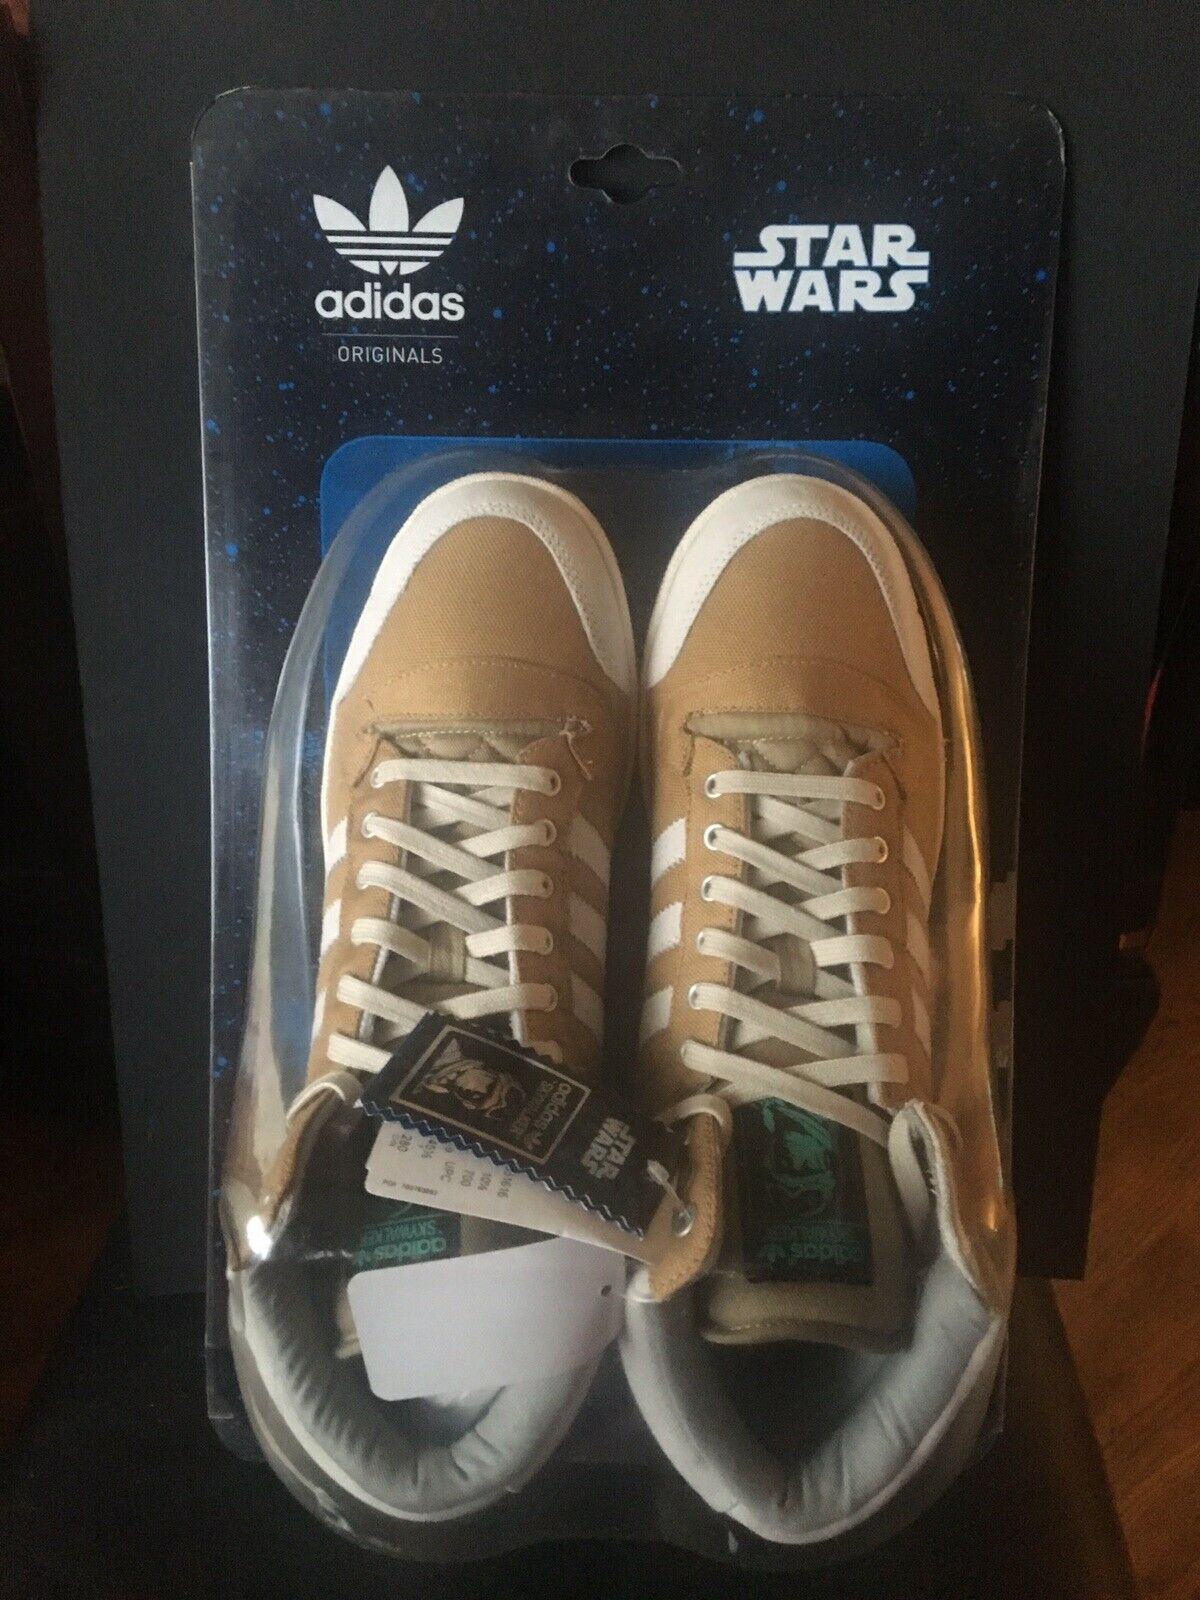 ADIDAS ORIGINALS STAR WARS HOTH LUKE SKYWALKER shoes Han Solo Vader US 10.5